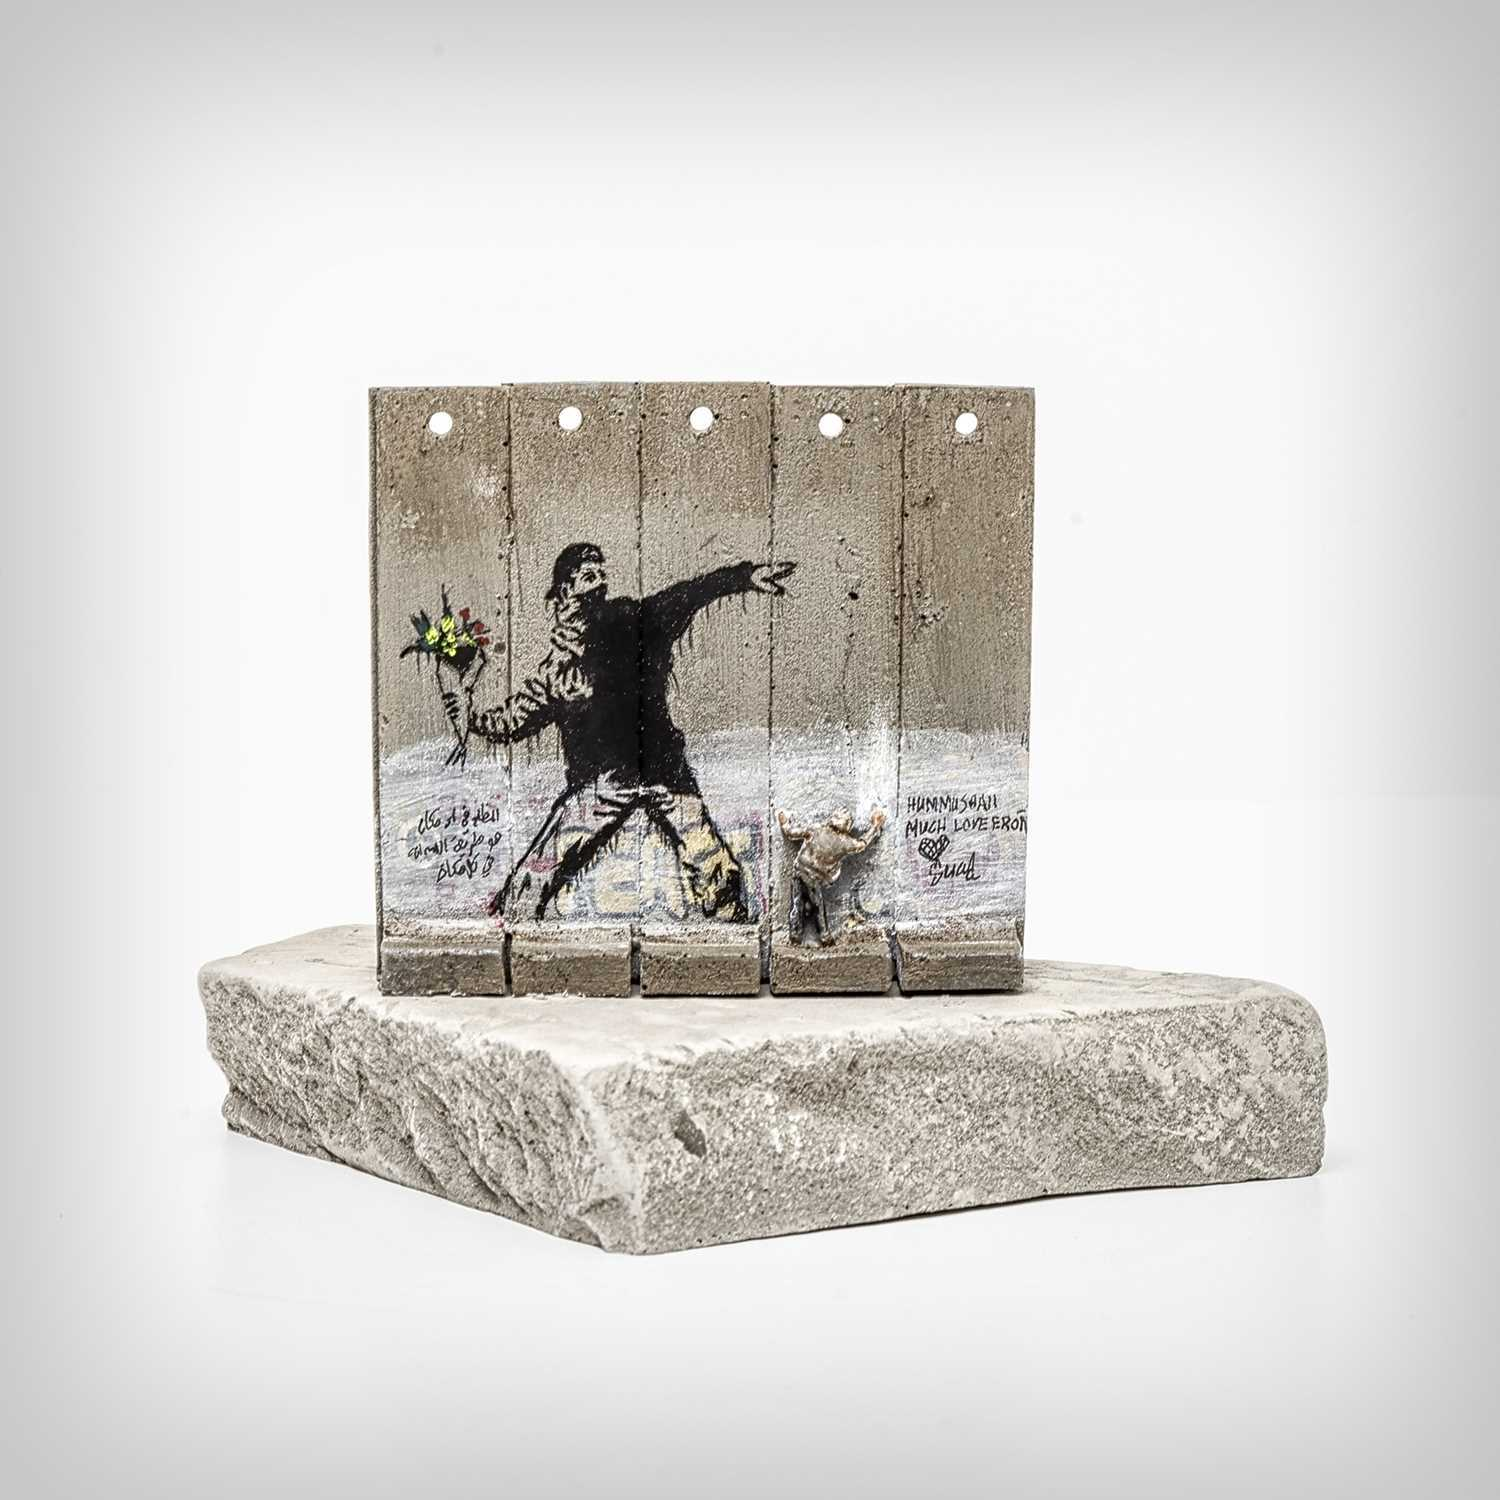 Lot 73 - Banksy (British 1974-), 'Walled Off Hotel - Five-Part Souvenir Wall Section (Flower Thrower)'